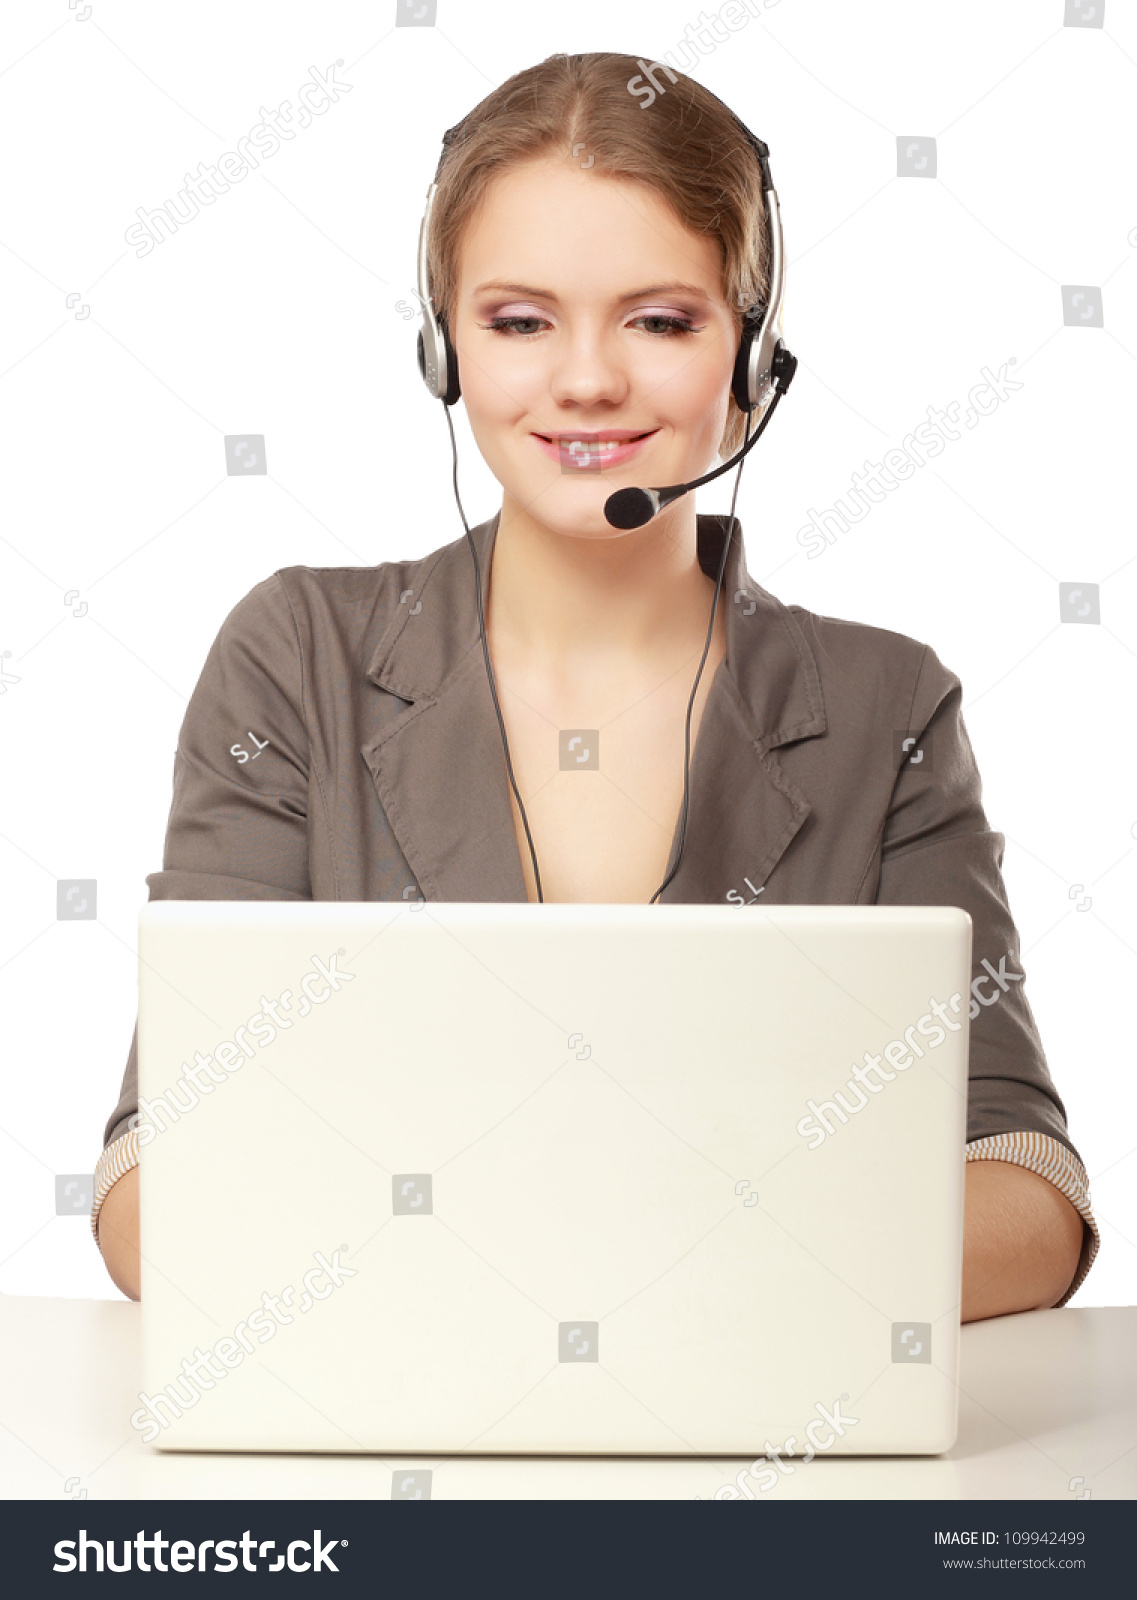 Customer service representatives interact with customers to handle complaints, process orders, and provide information about an organization's products and services. Although customer service representatives are employed in nearly every industry, many work in telephone call centers, credit and Work experience in related occupation: None.